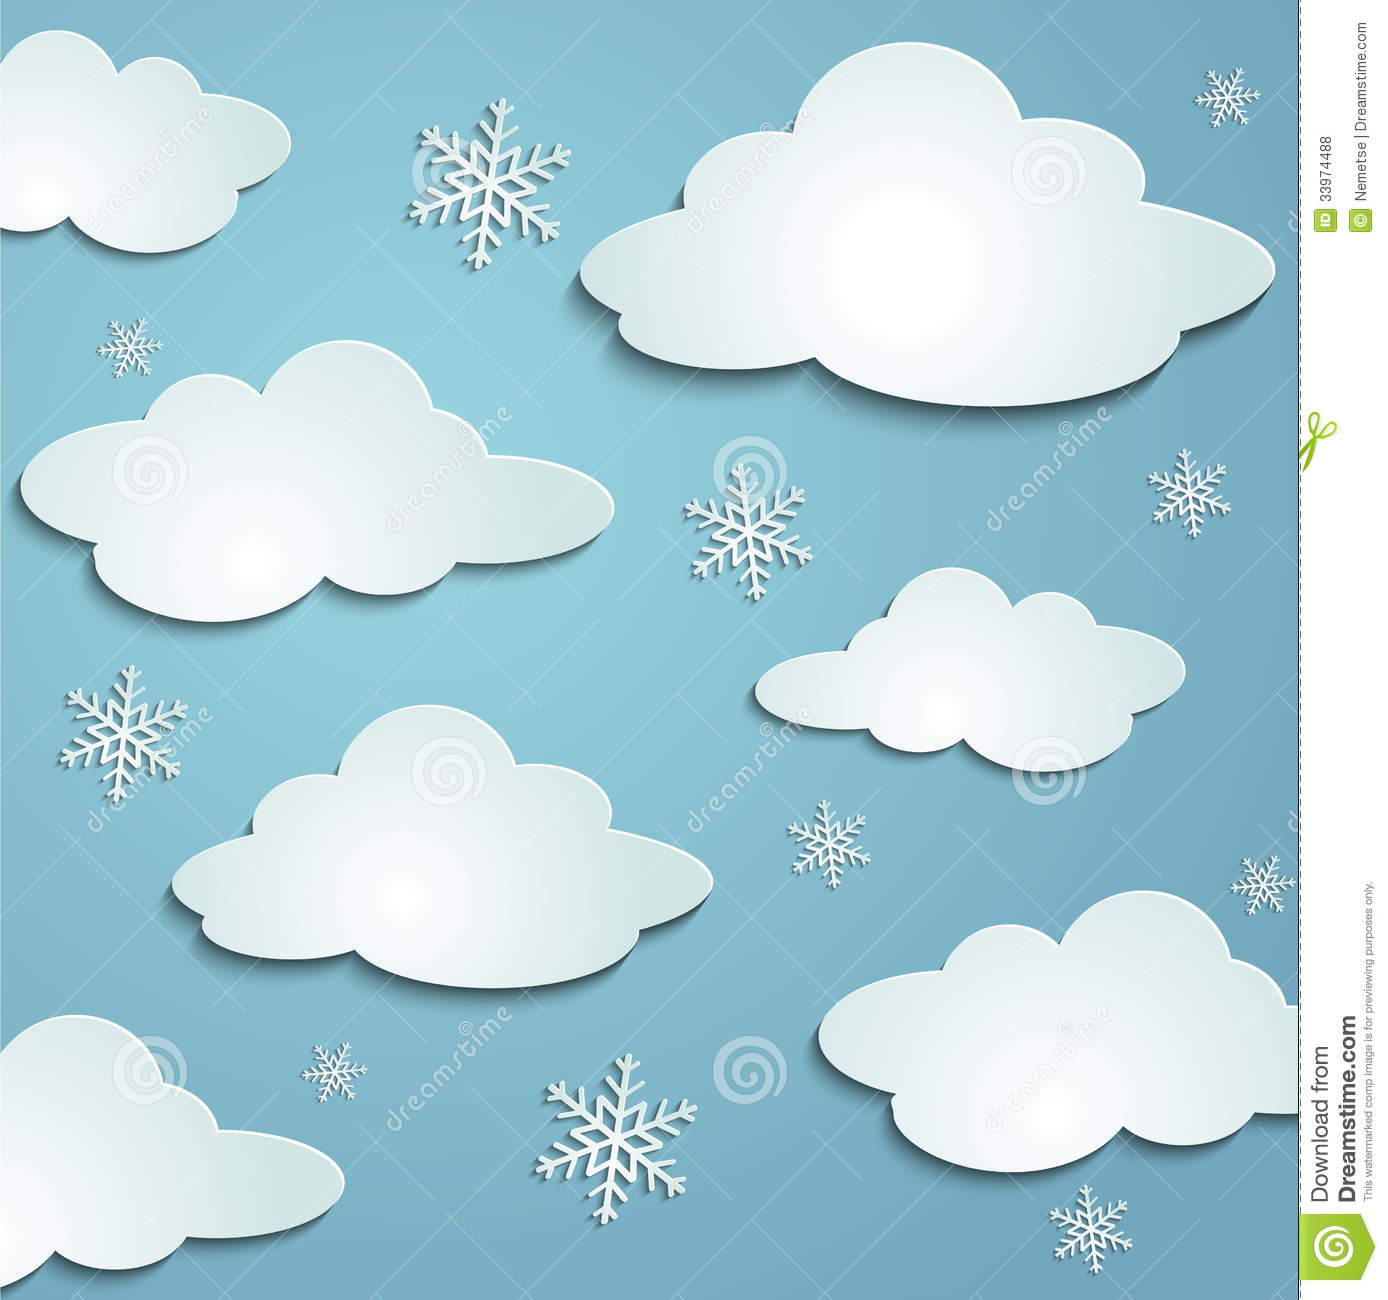 Clouds snowflakes royalty free stock photos image 33974488 for How to make a paper cloud